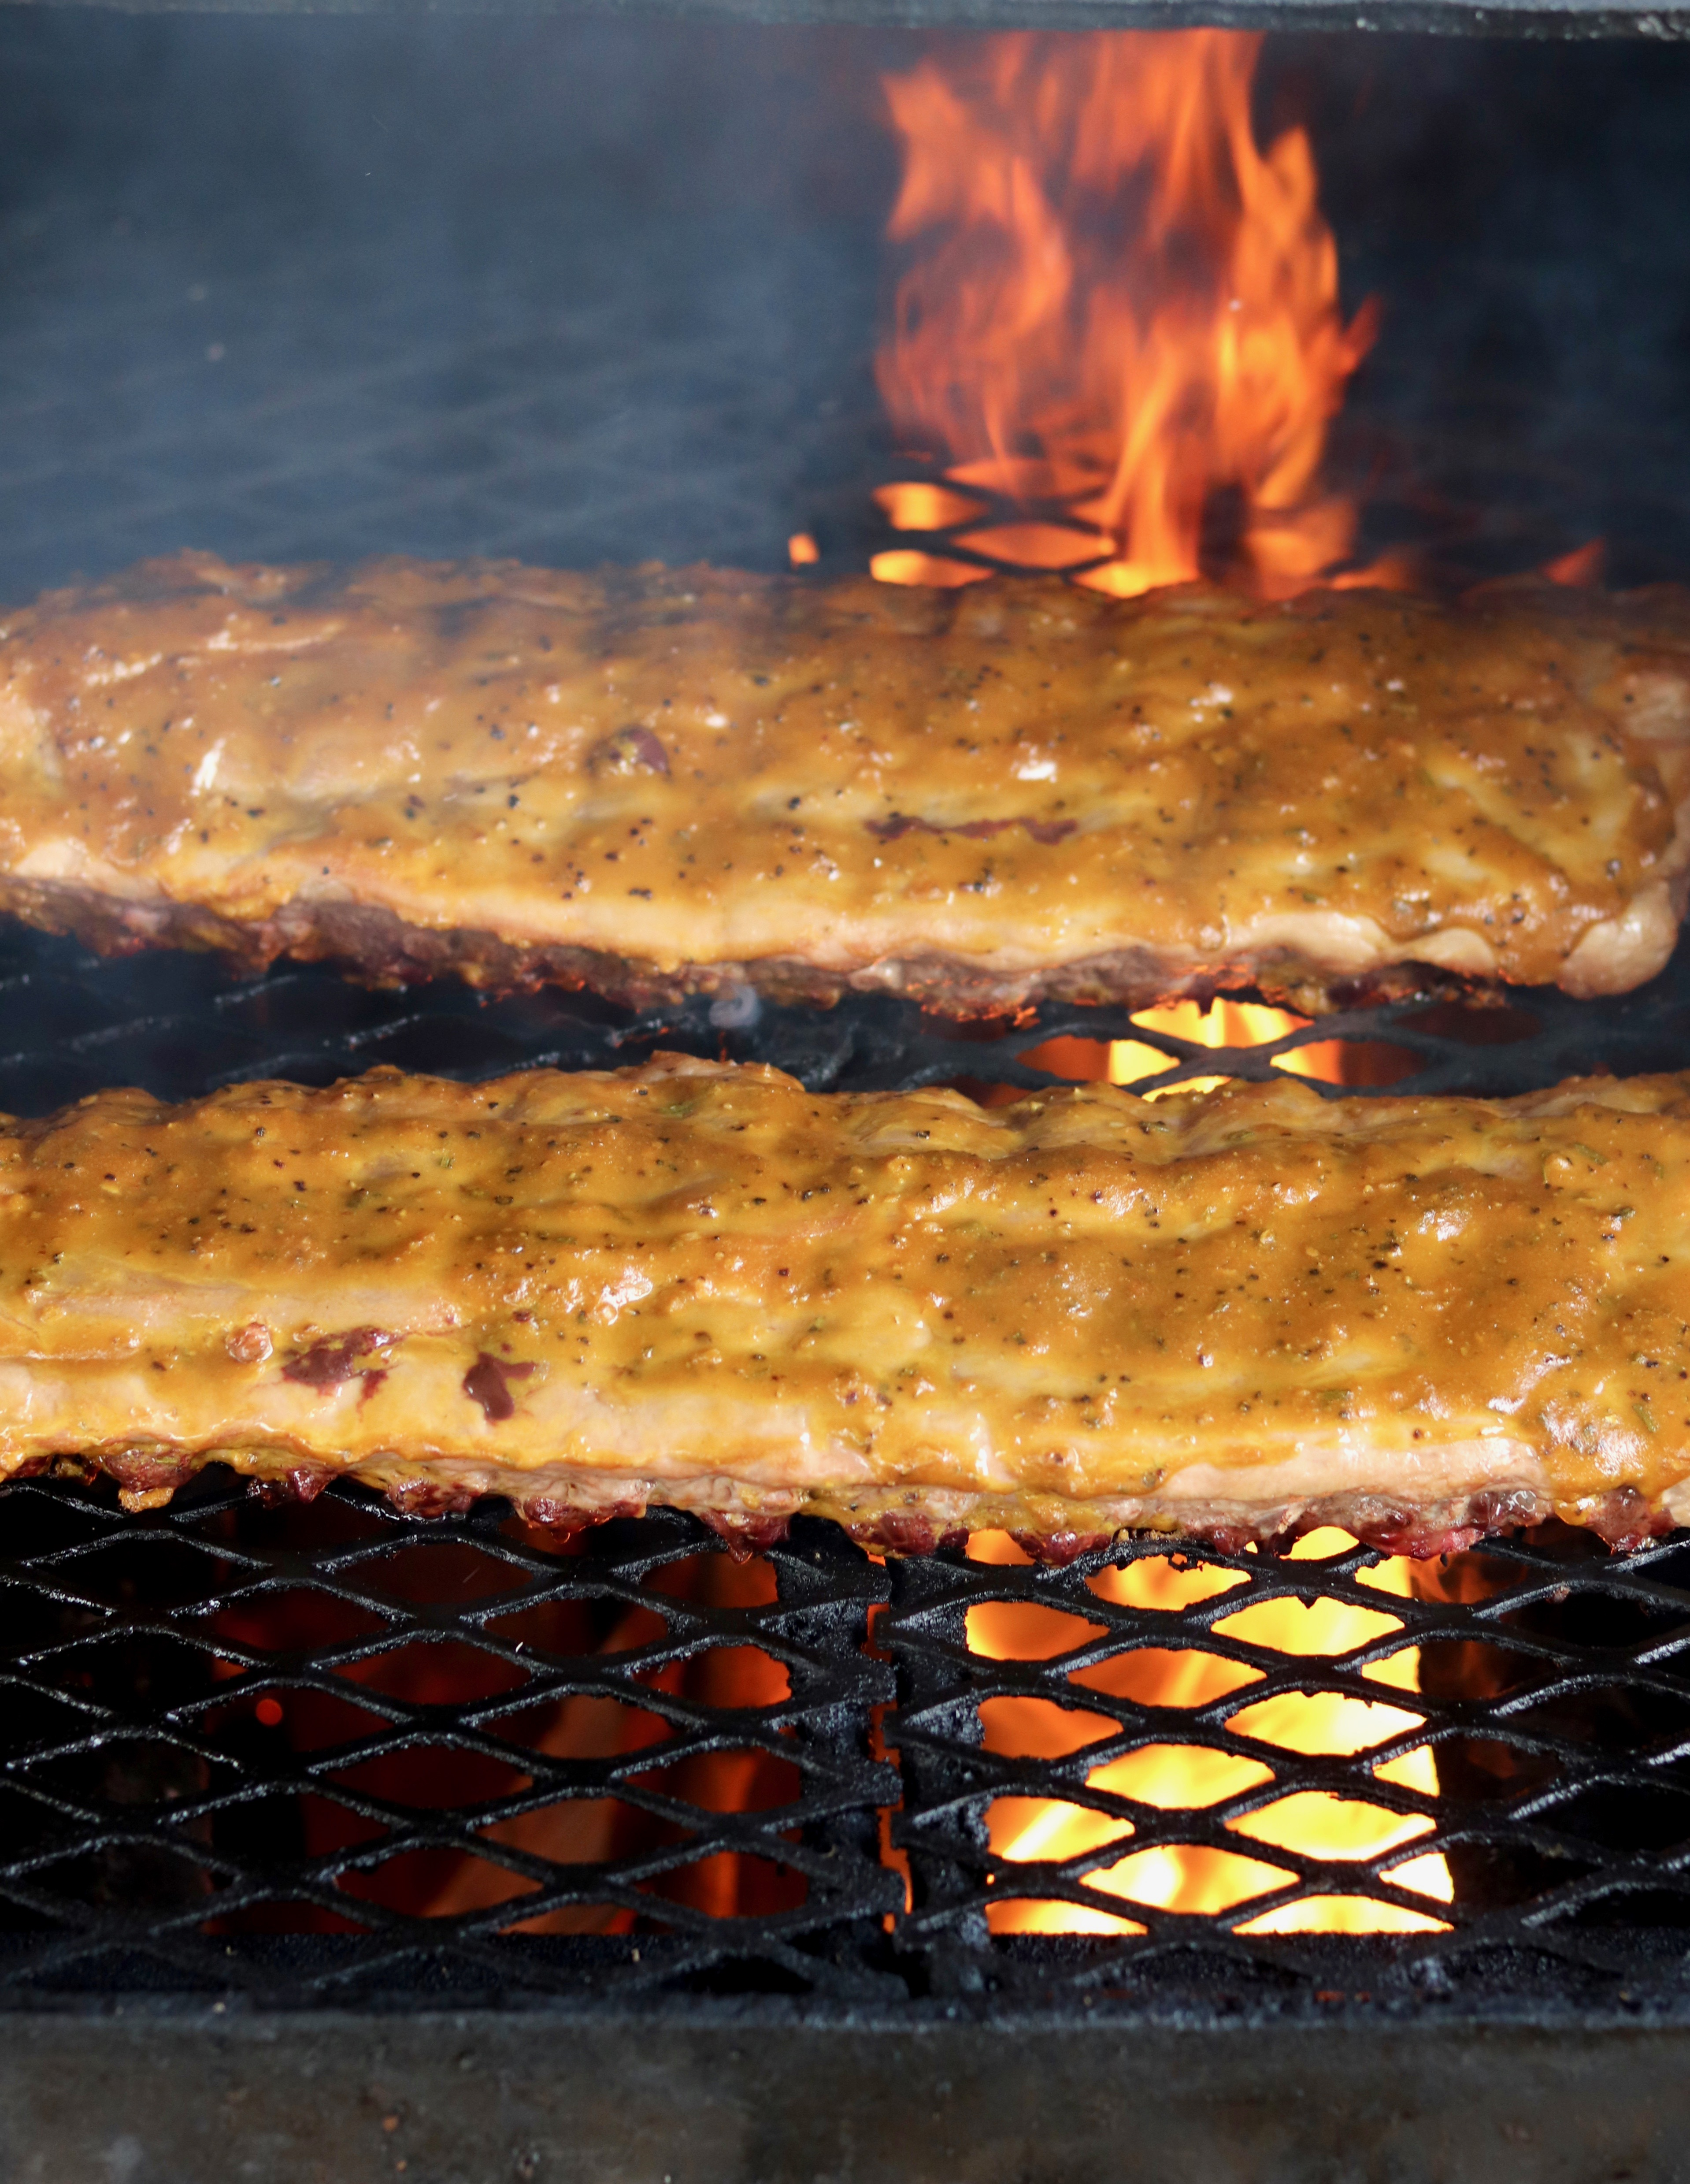 Baby Back Ribs on grill with fire in background